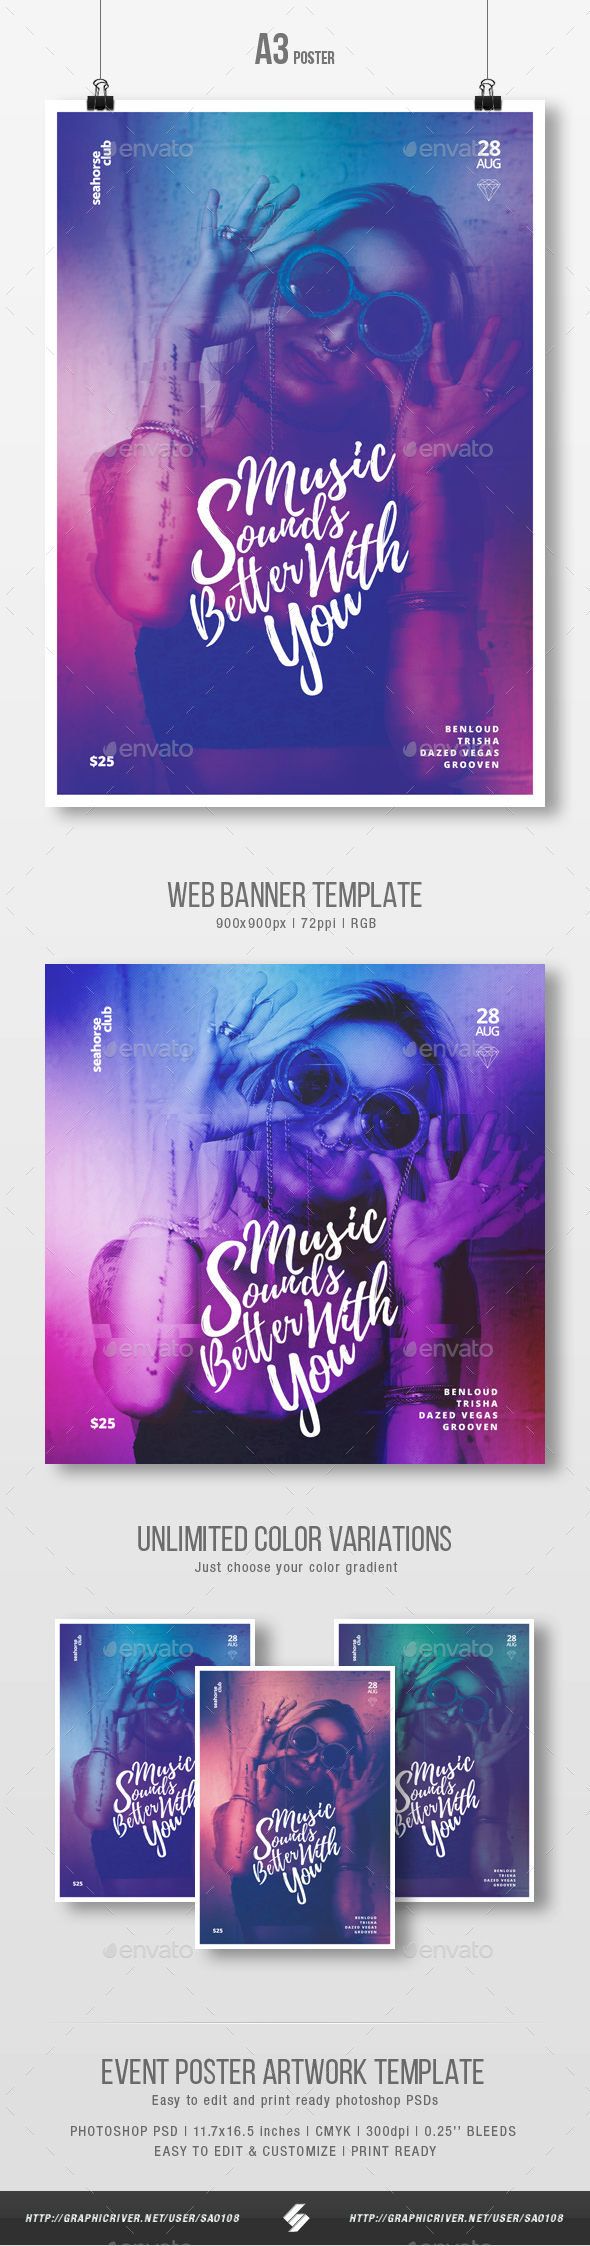 Music Sounds Better With You - Party Flyer / Poster Template A3 - Clubs & Parties Events